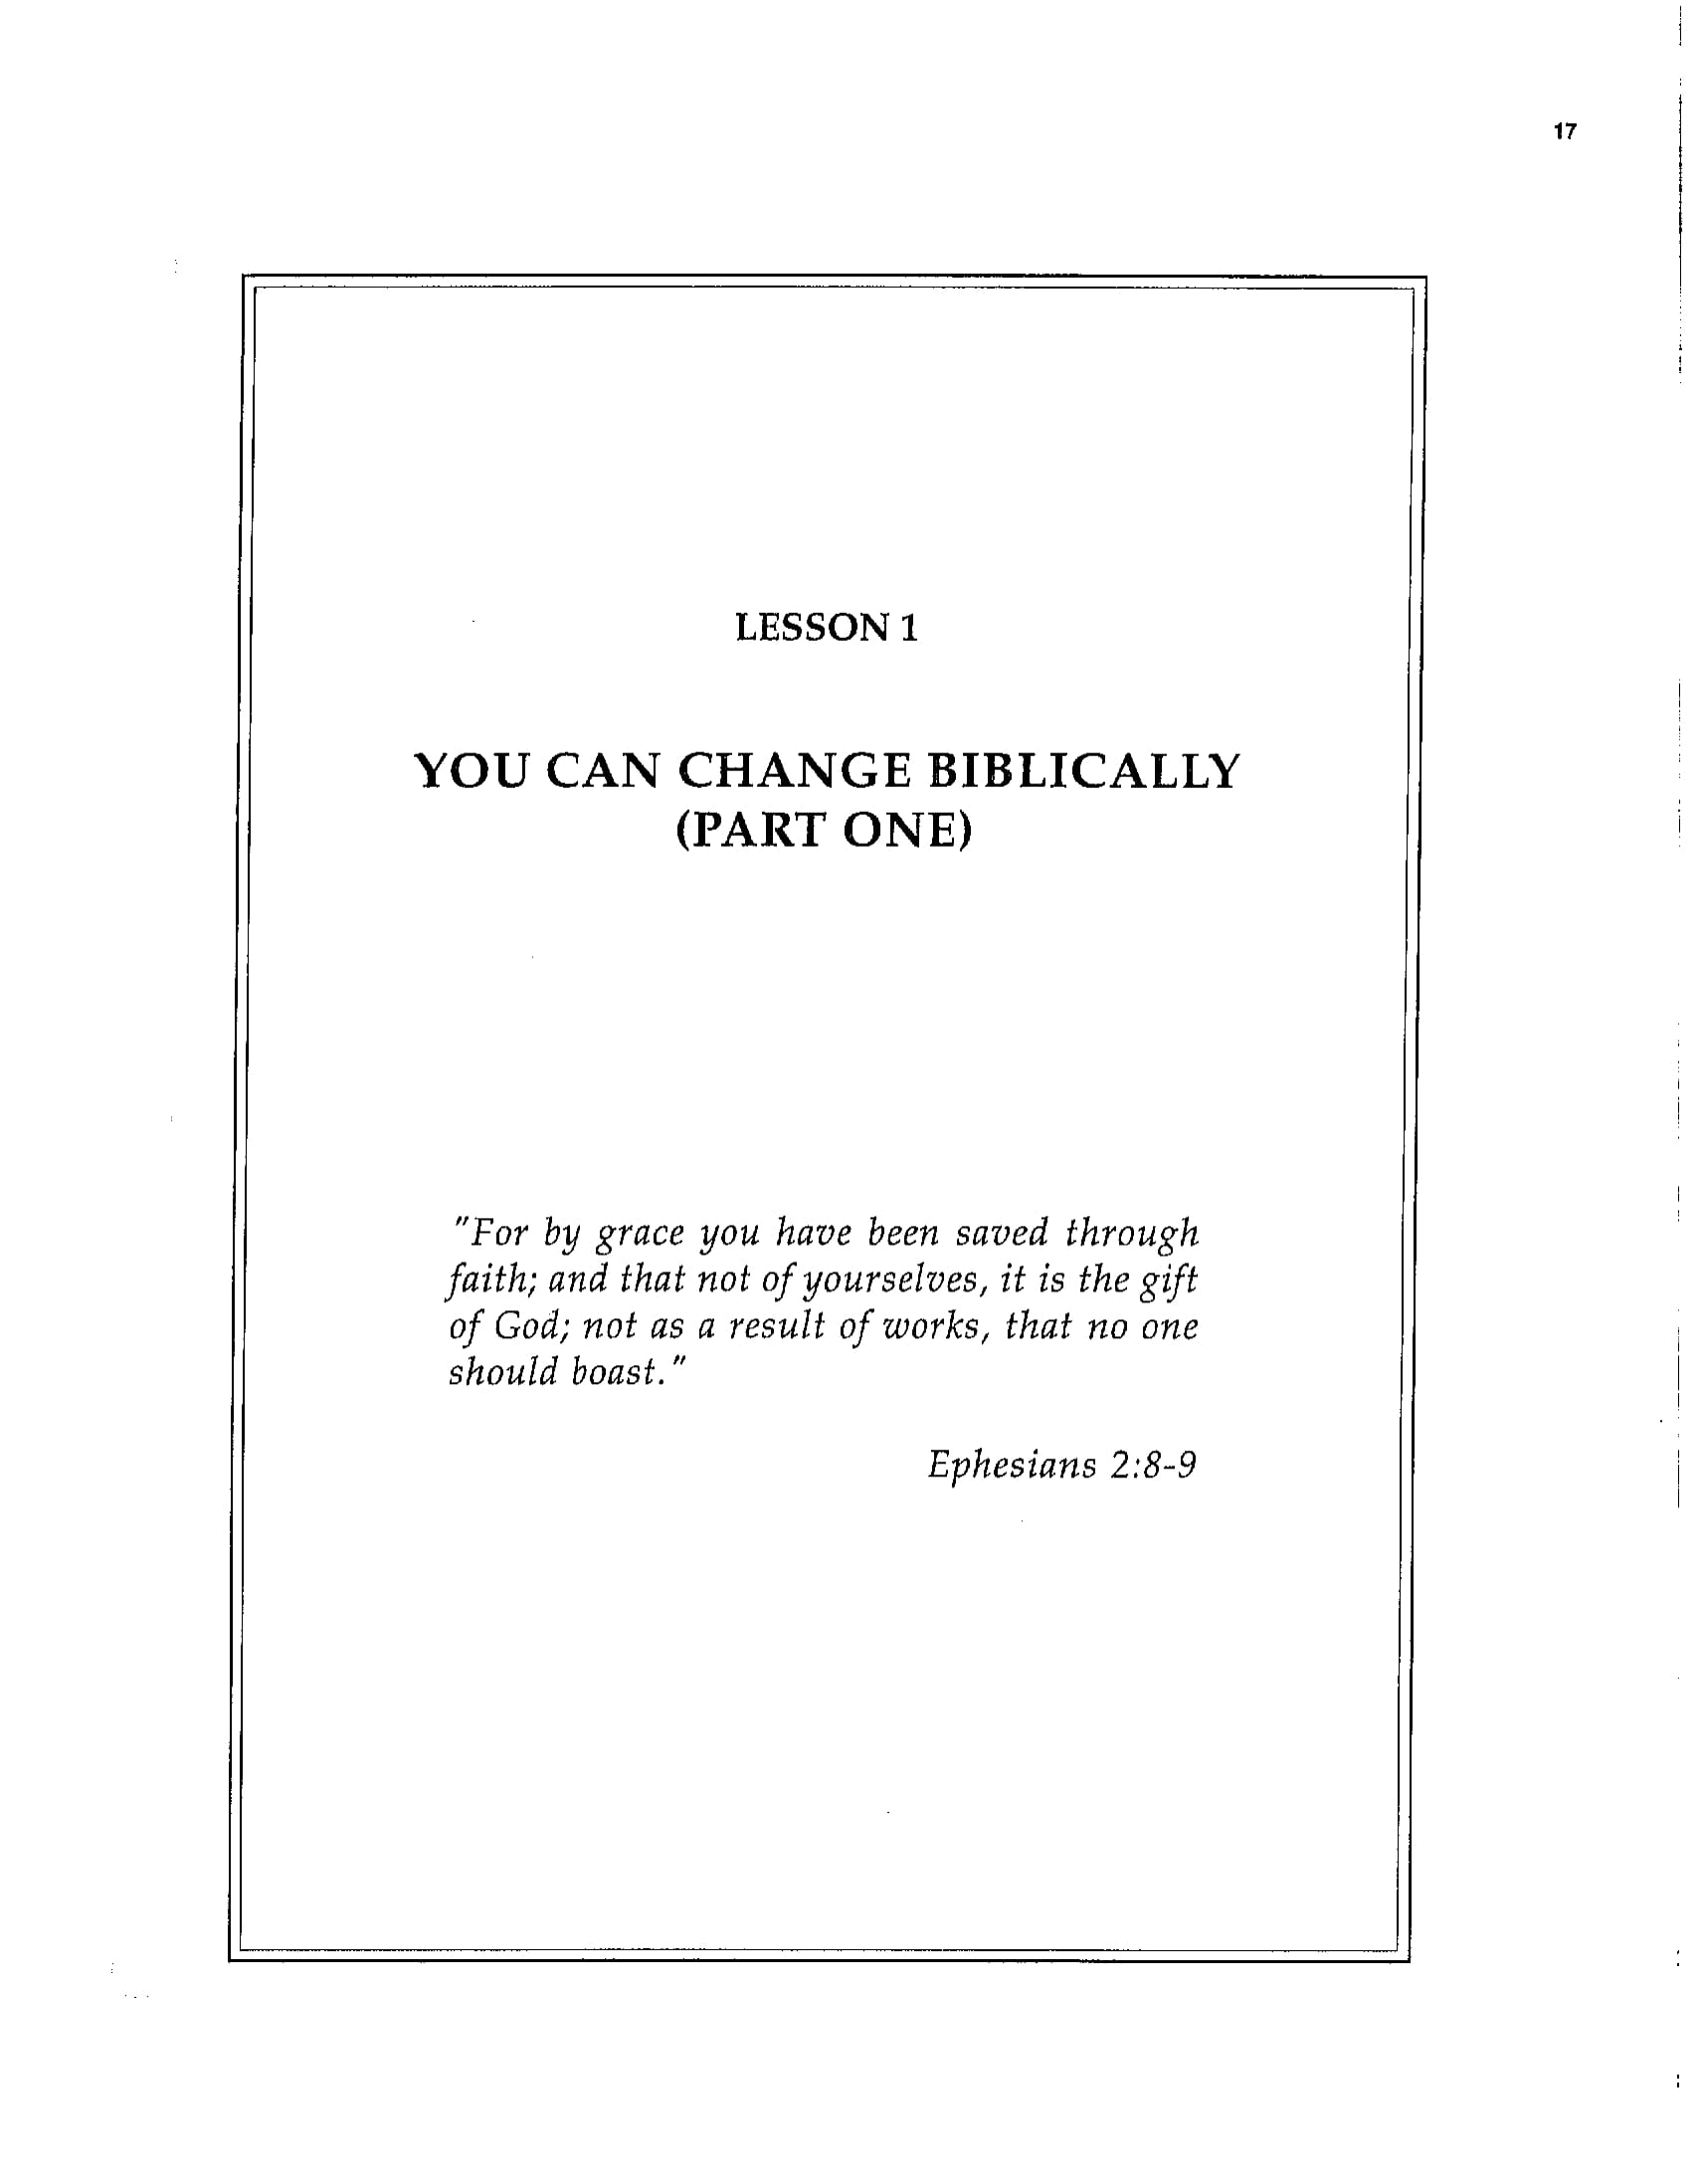 BC&D-02 - Lesson 1 - You Can Change Biblically 1 Work Book Page-01